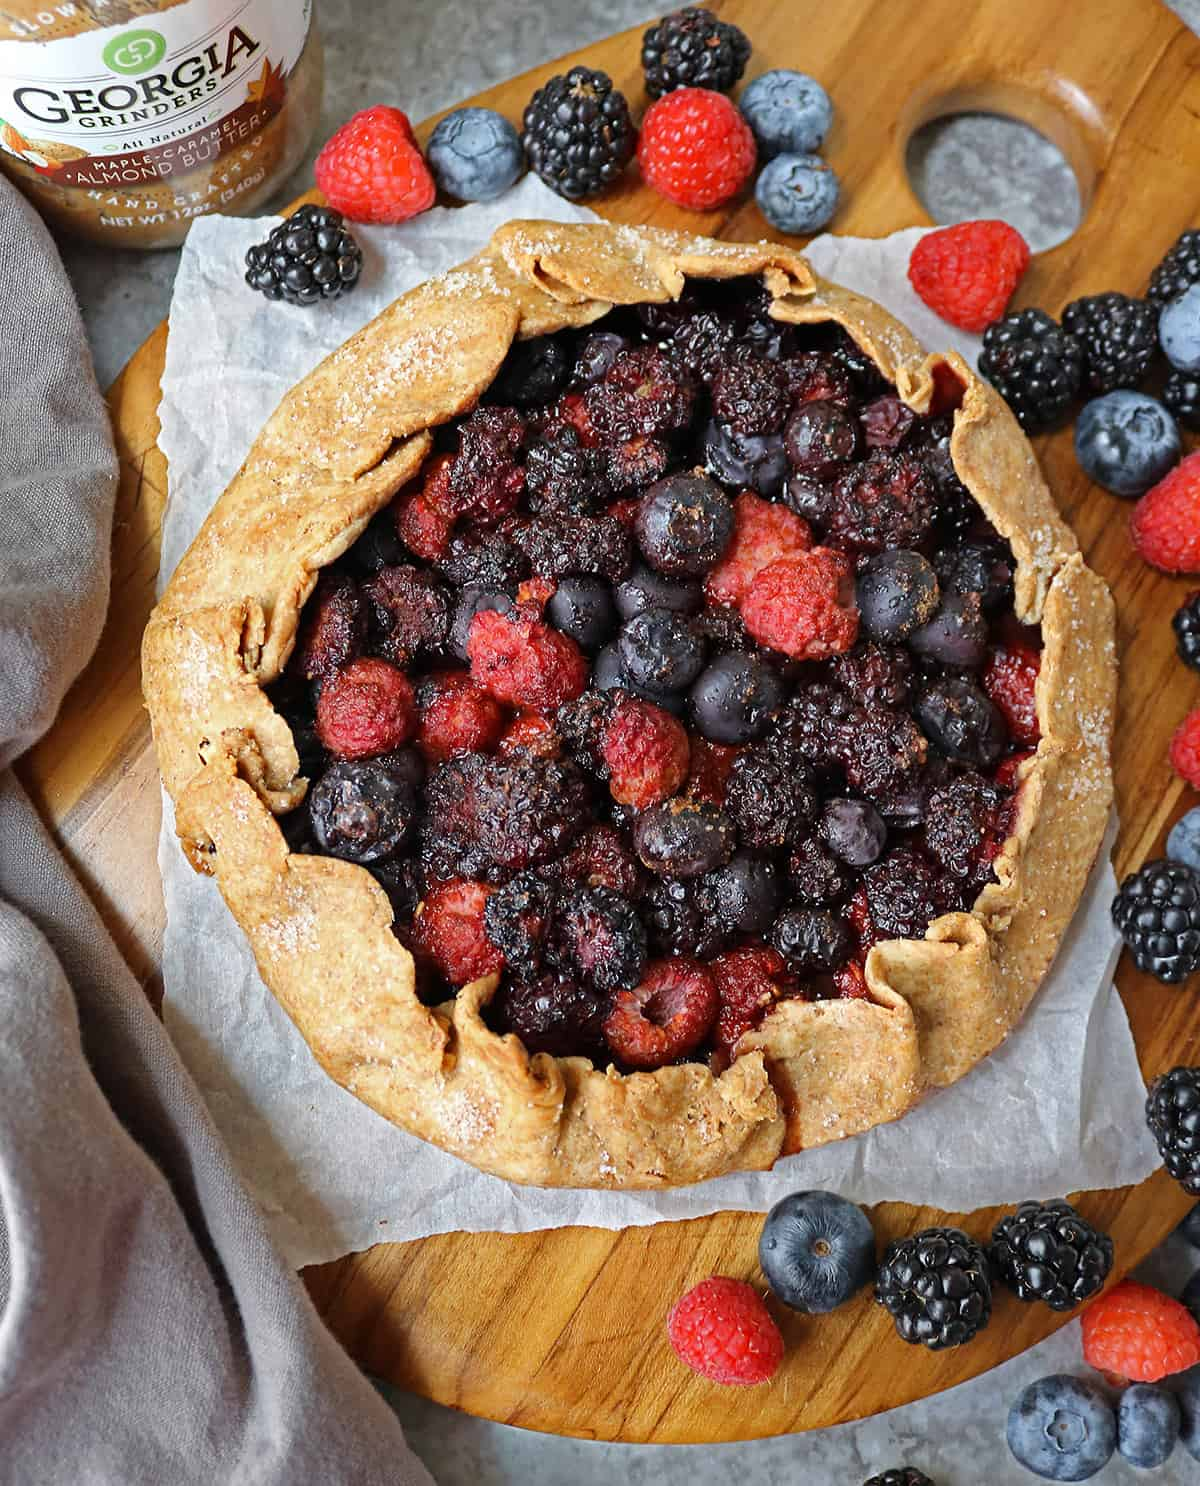 Tasty Easy Berry Galette made with raspberries, blueberries, and blackberries.